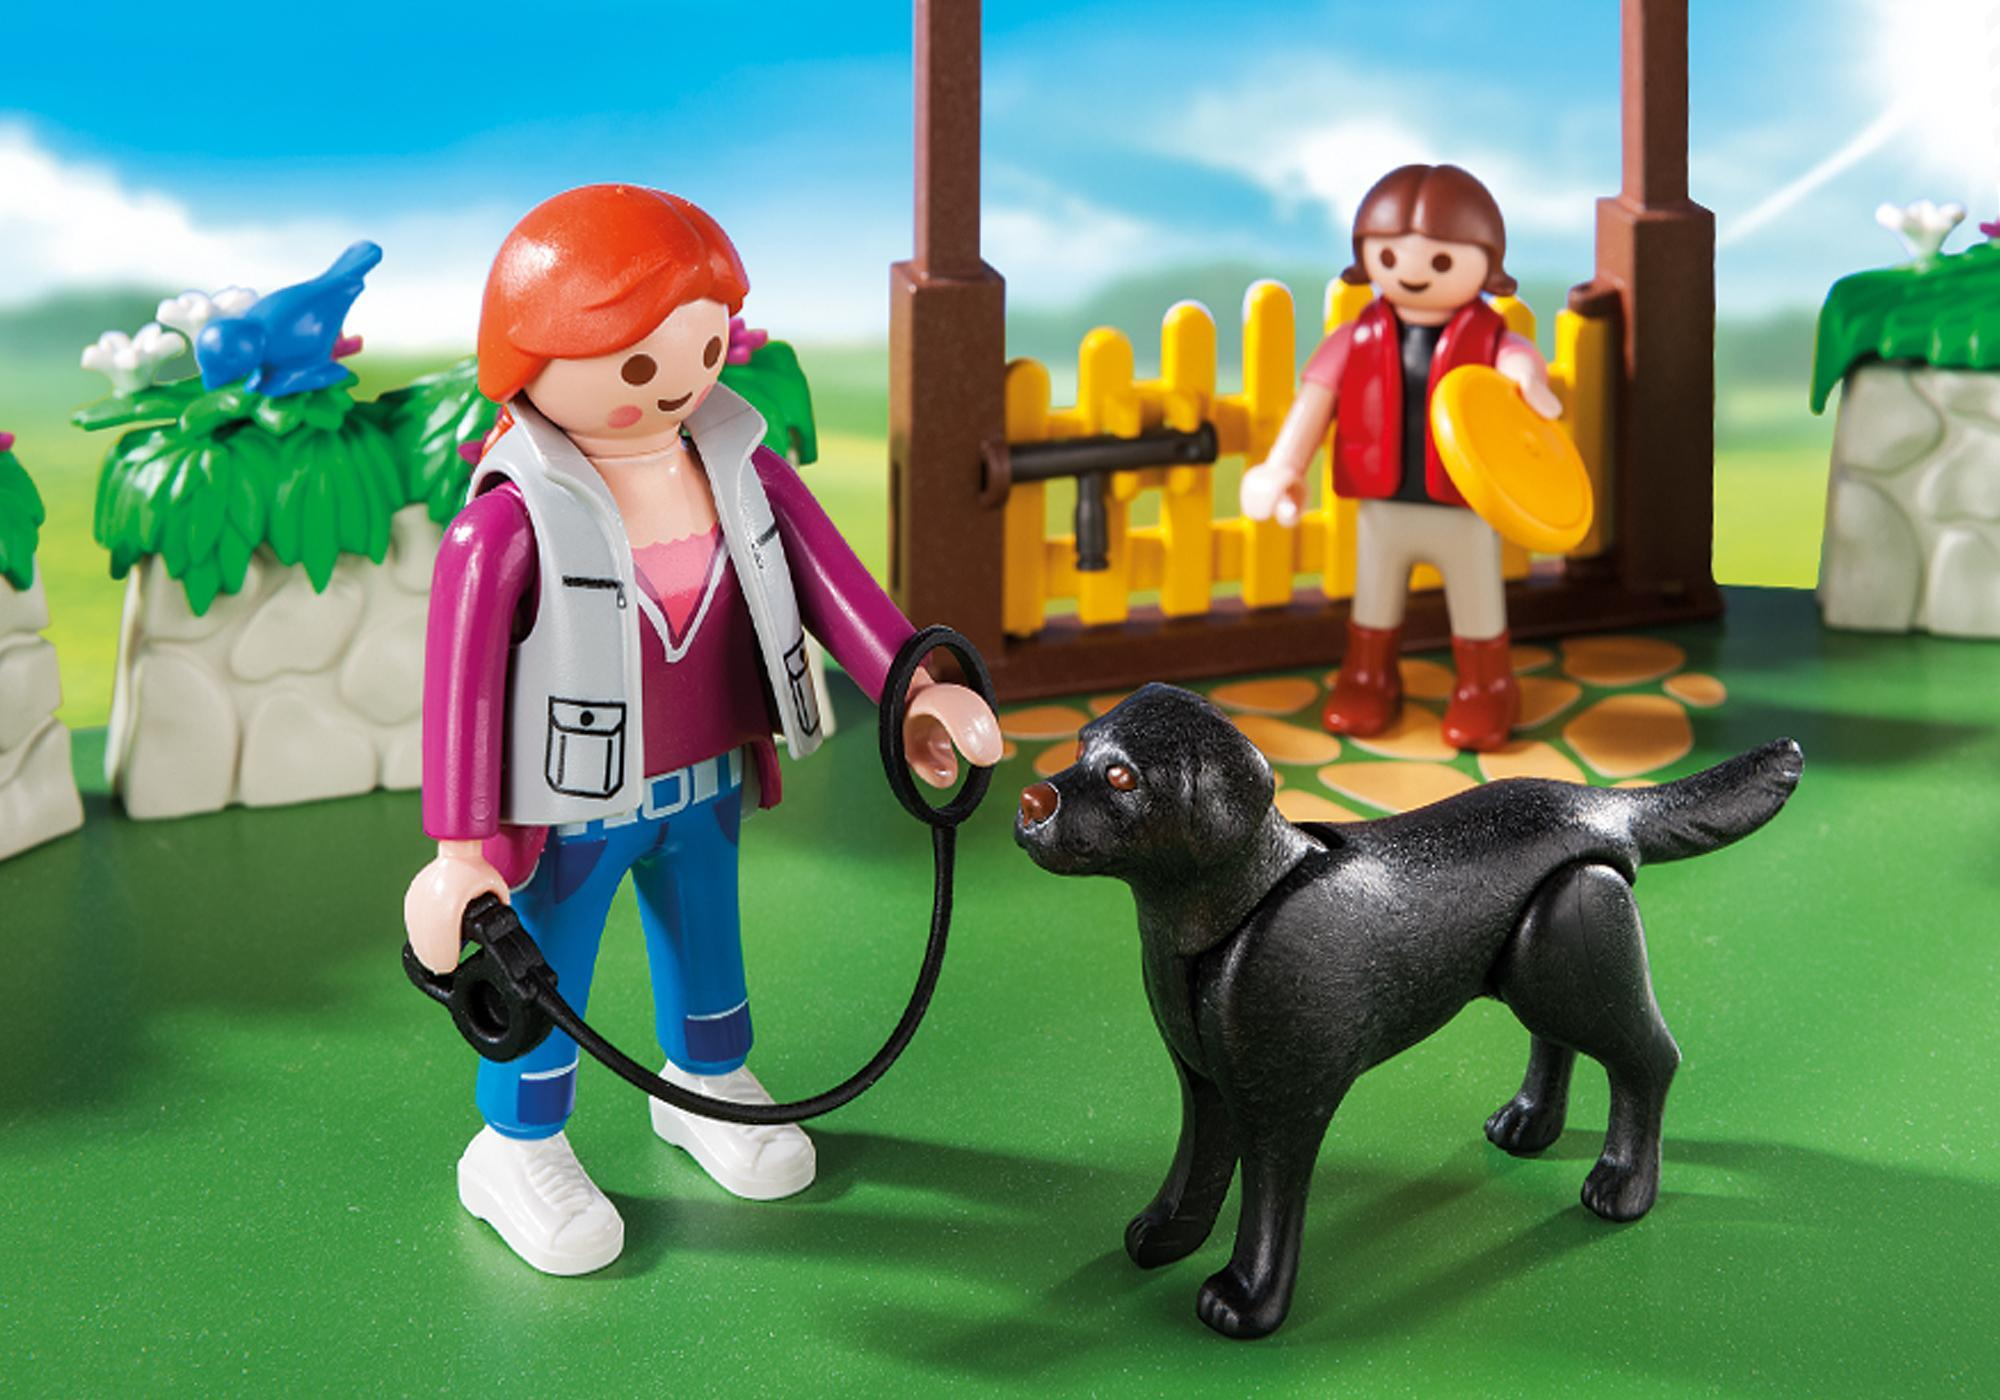 http://media.playmobil.com/i/playmobil/6145_product_extra3